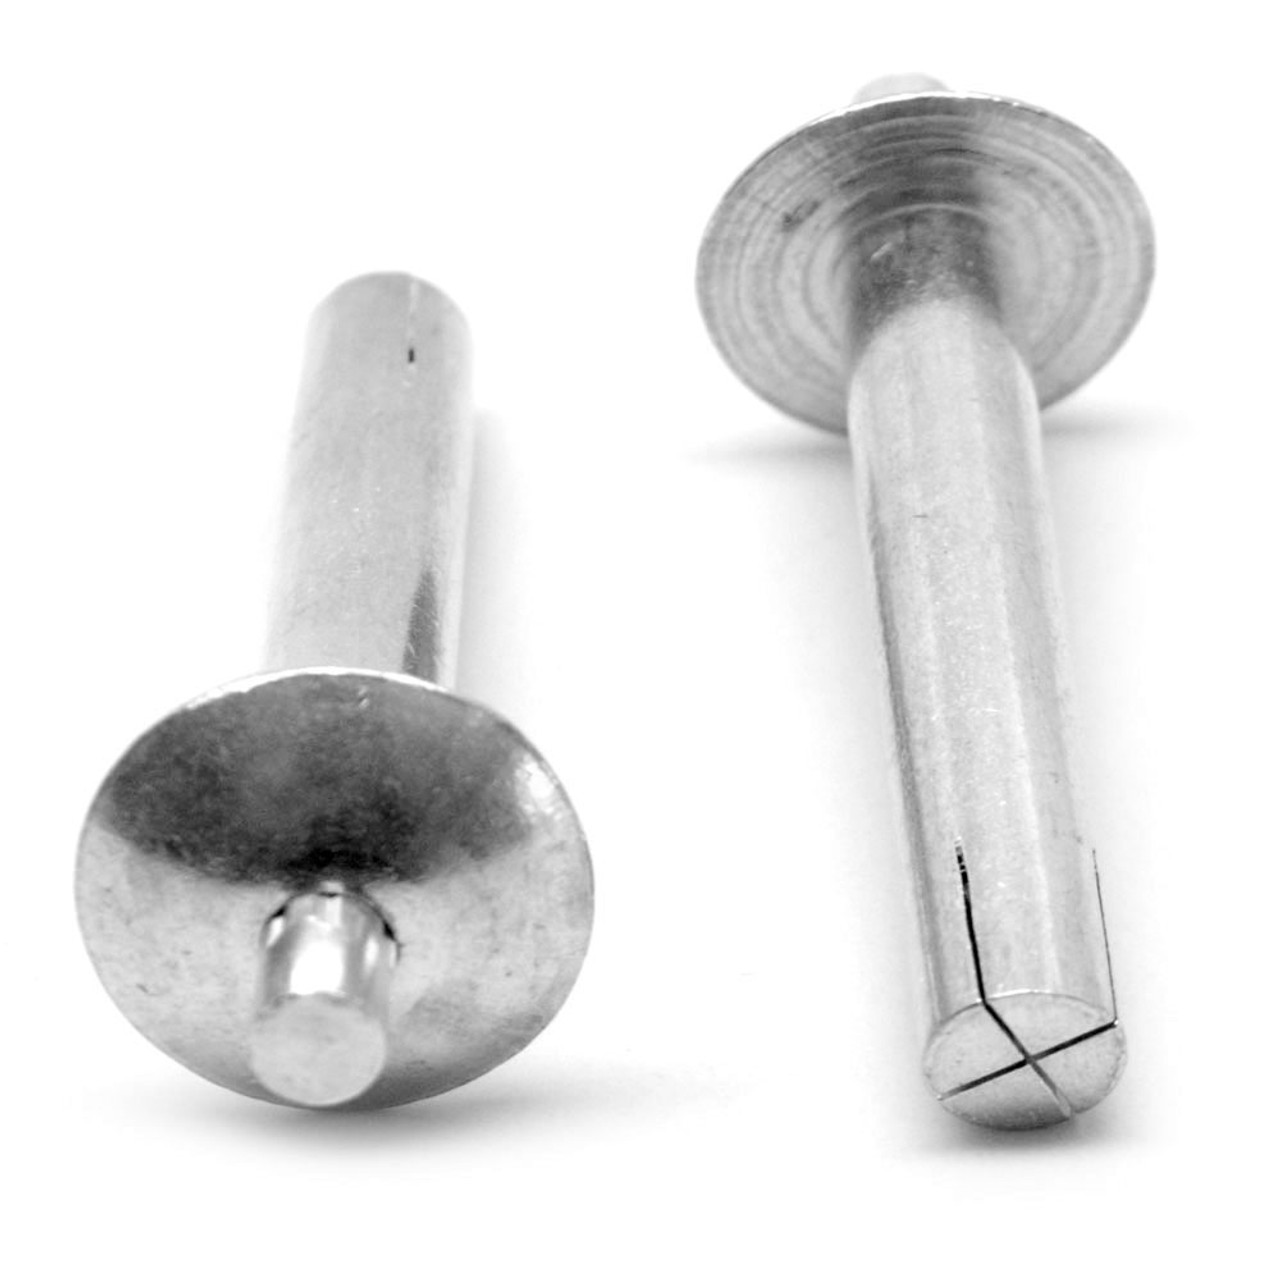 1/4 x 1/4 Drive Pin Rivet Brazier Head with Stainless Pin Aluminum